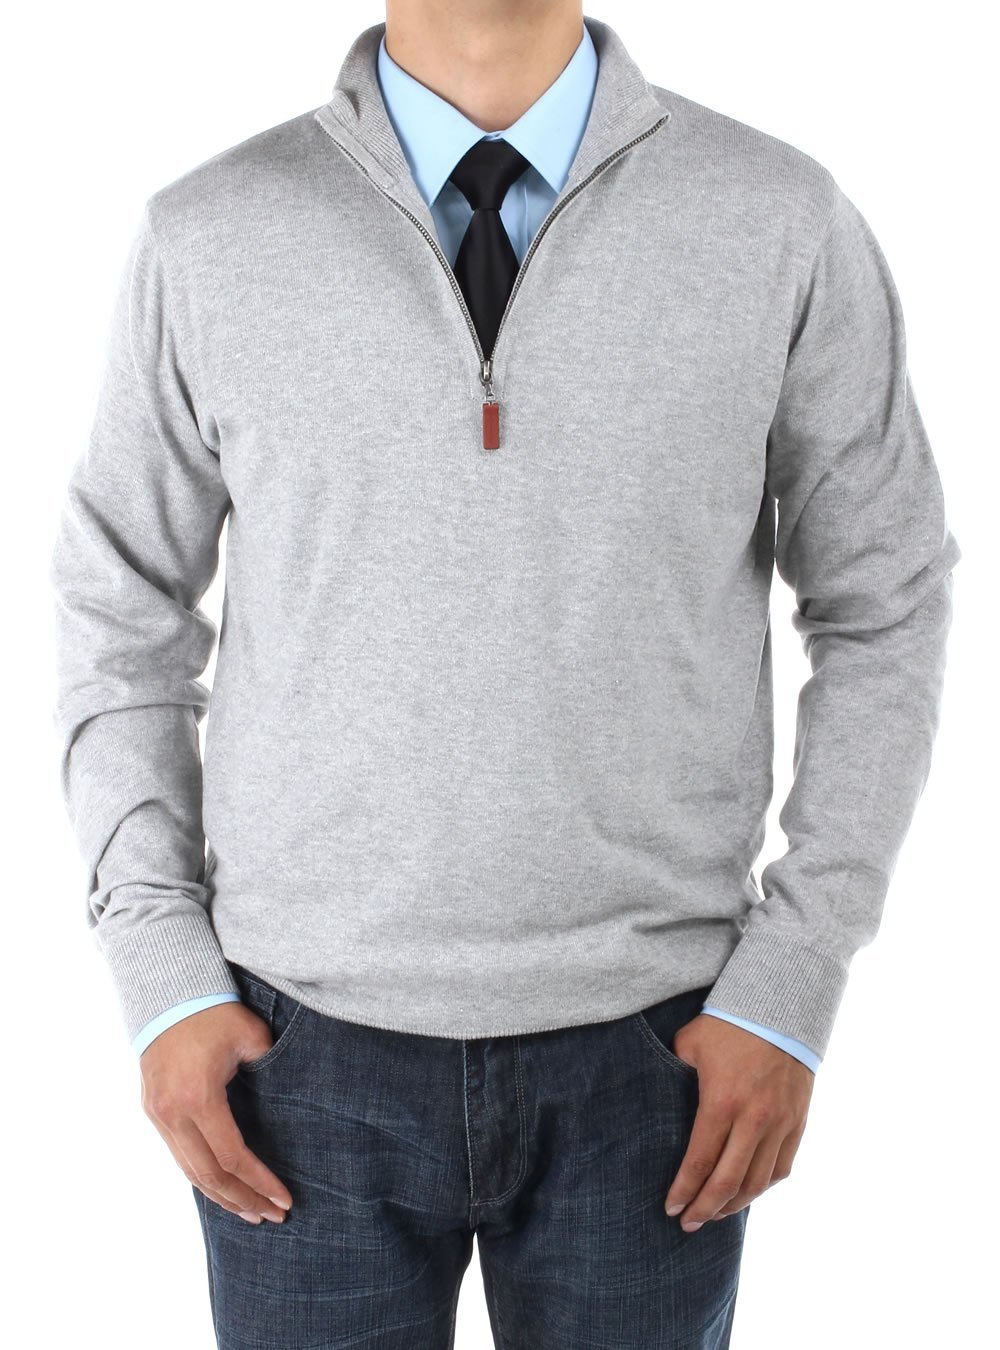 LN LUCIANO NATAZZI Men's Mock Neck 1/4 Zip Sweater Relaxed Fit (XXX-Large, Light Gray)